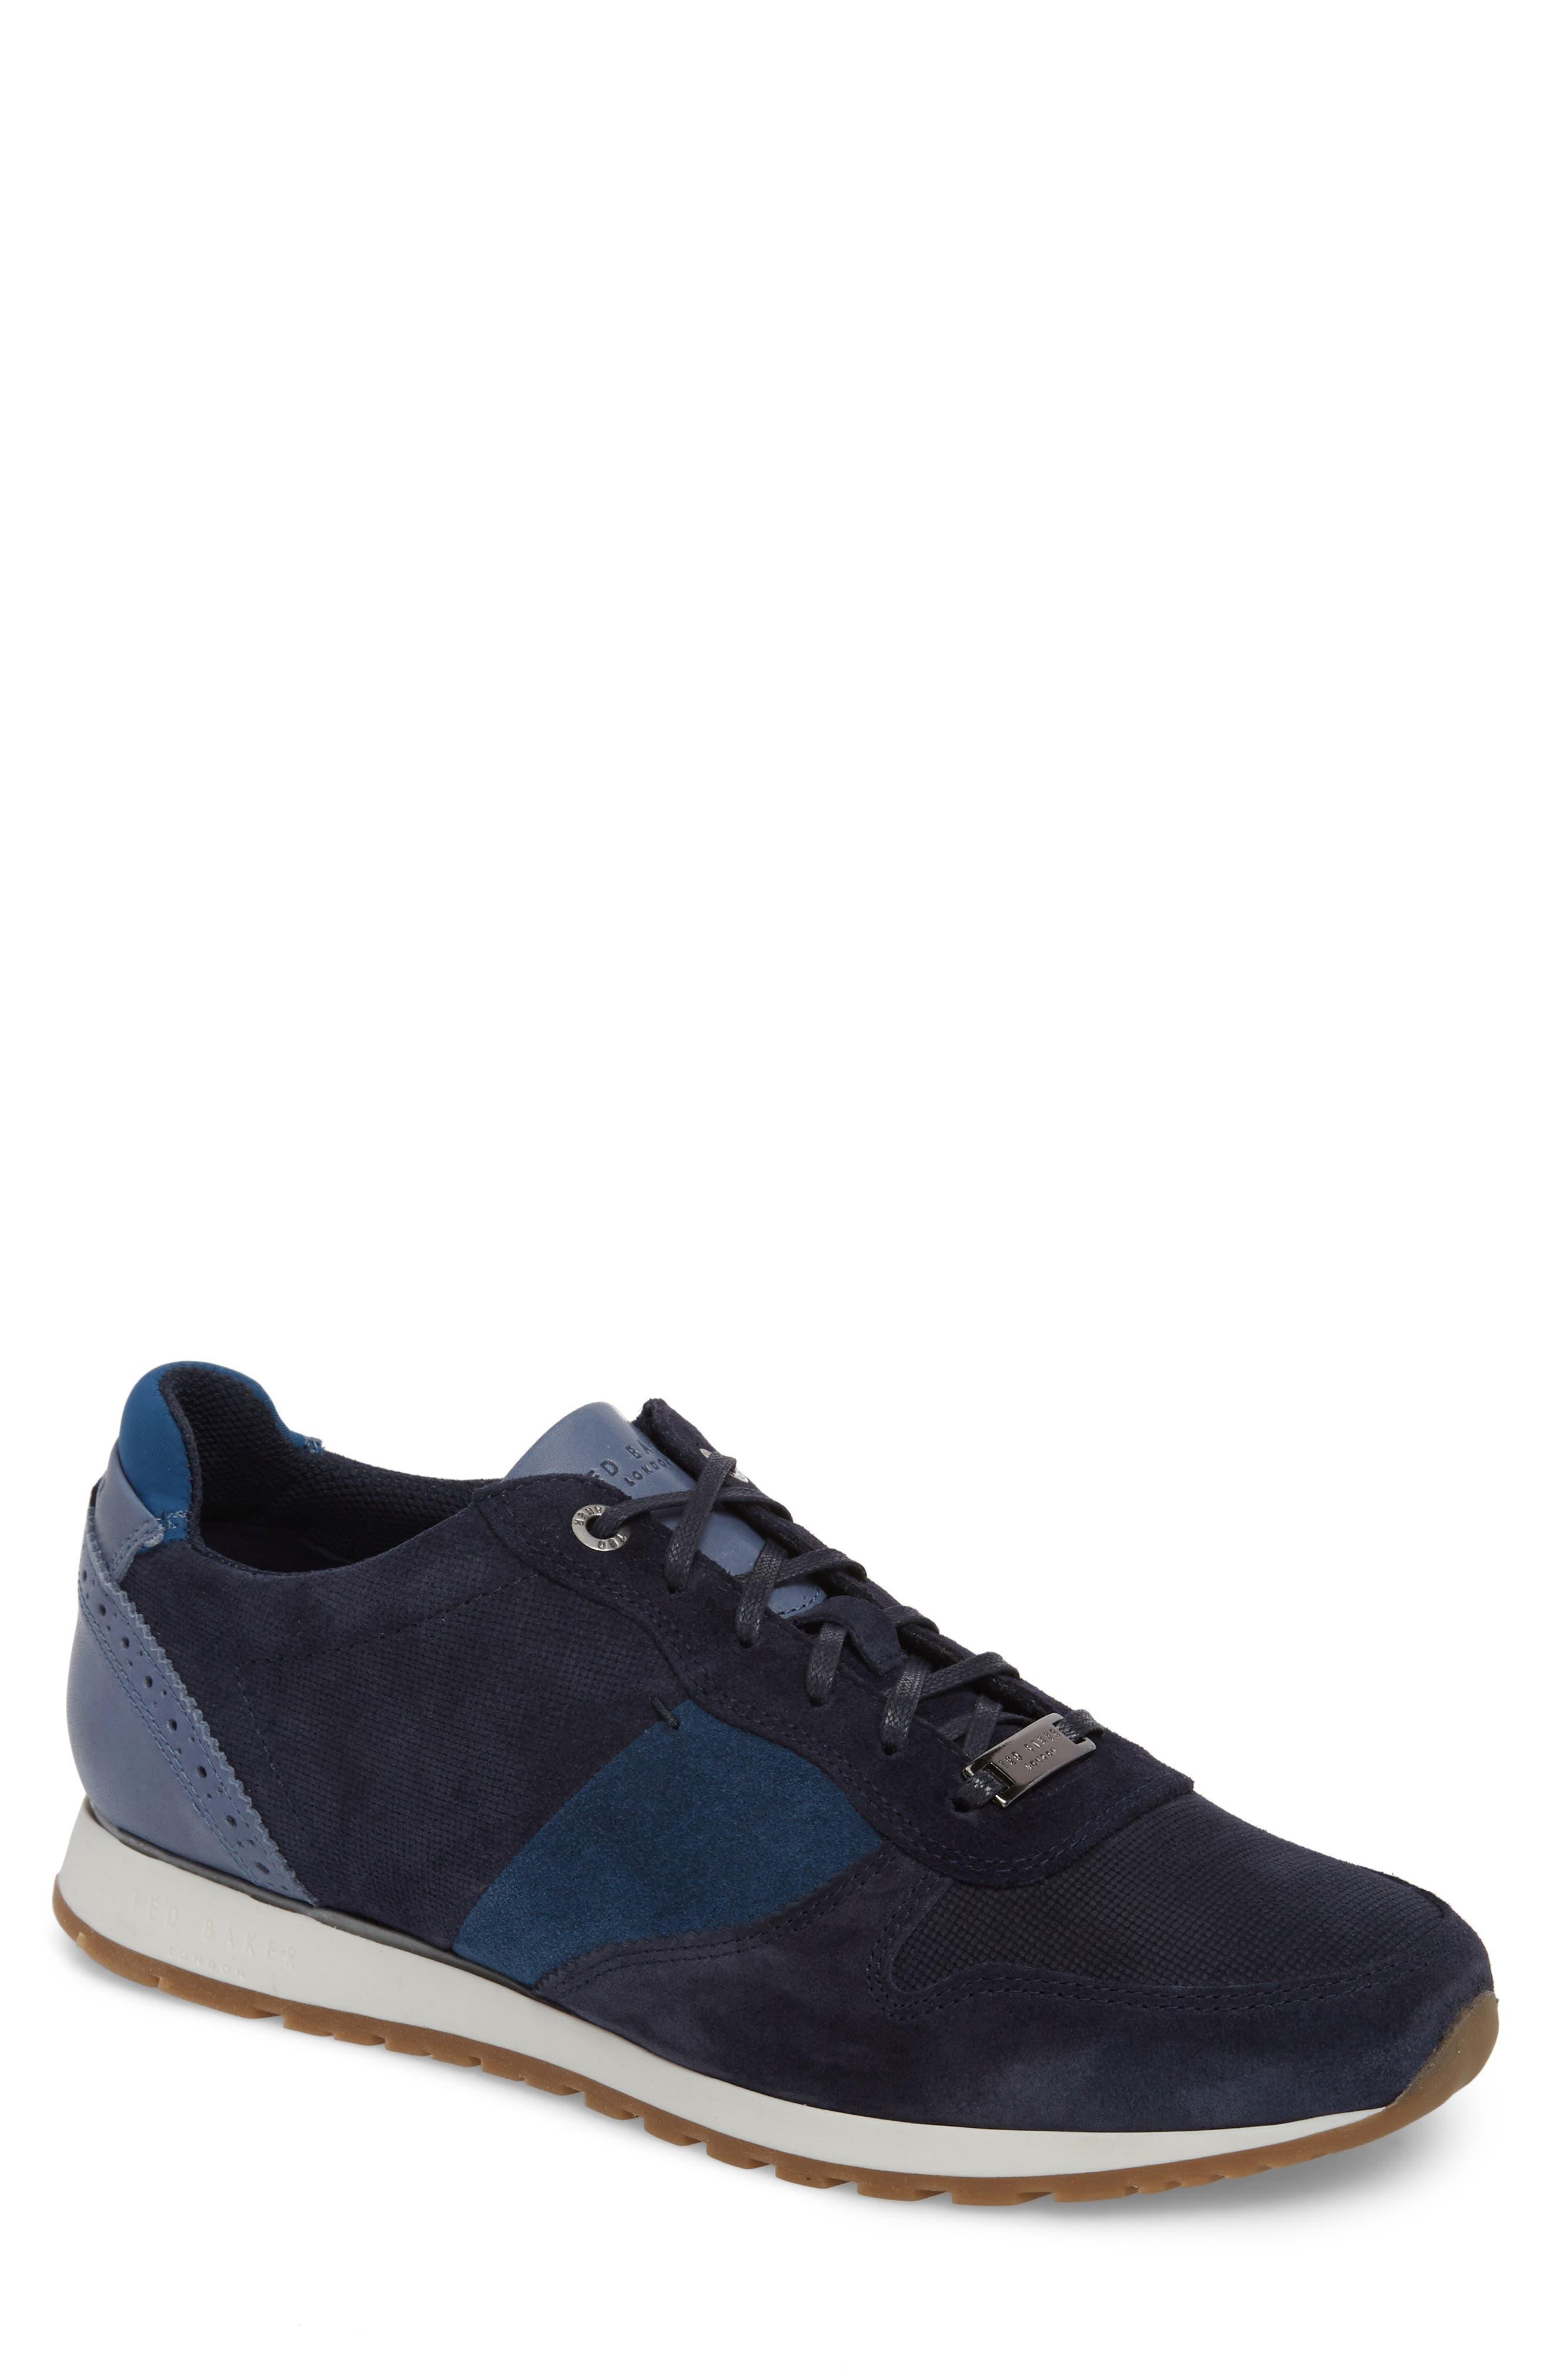 Shindls Low Top Sneaker,                             Main thumbnail 1, color,                             BLUE LEATHER/ SUEDE